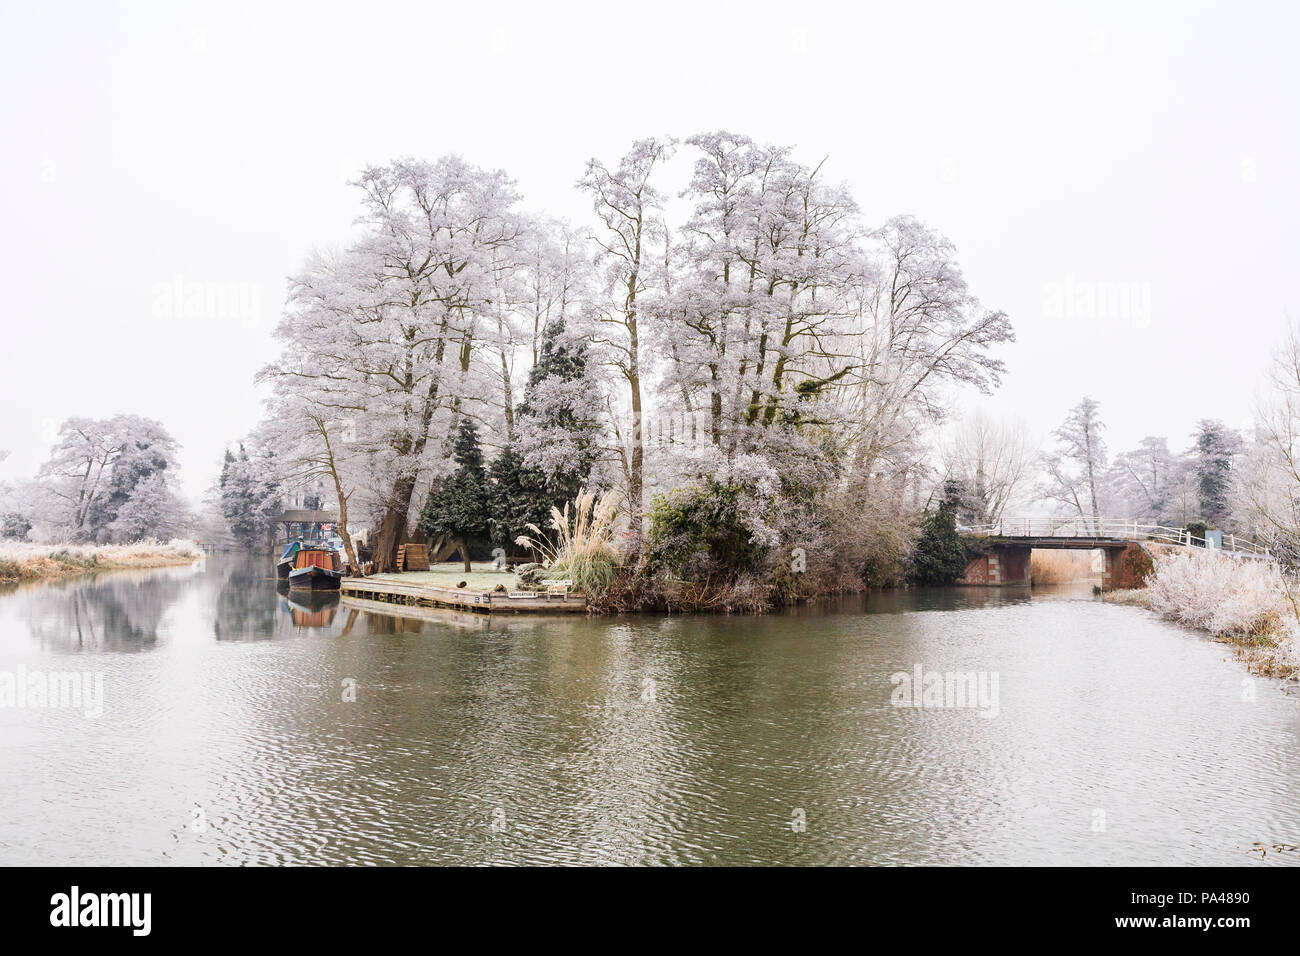 Rural Surrey landscape, southeast England, River Wey with moored narrowboat and road bridge near Pyrford in low temperature freezing winter weather - Stock Image